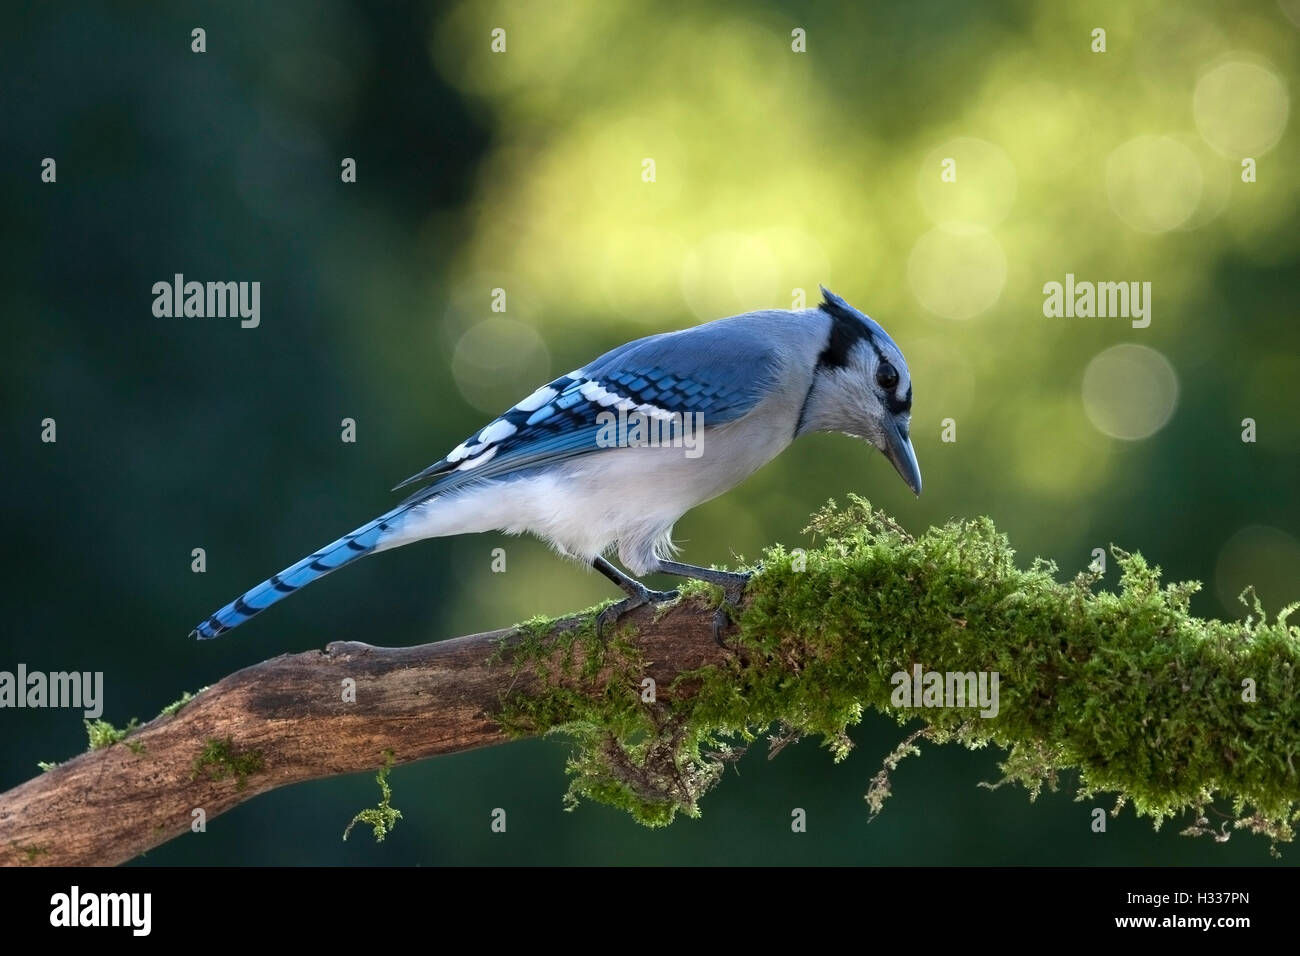 Blue jay perched on moss covered branch searches for food Stock Photo